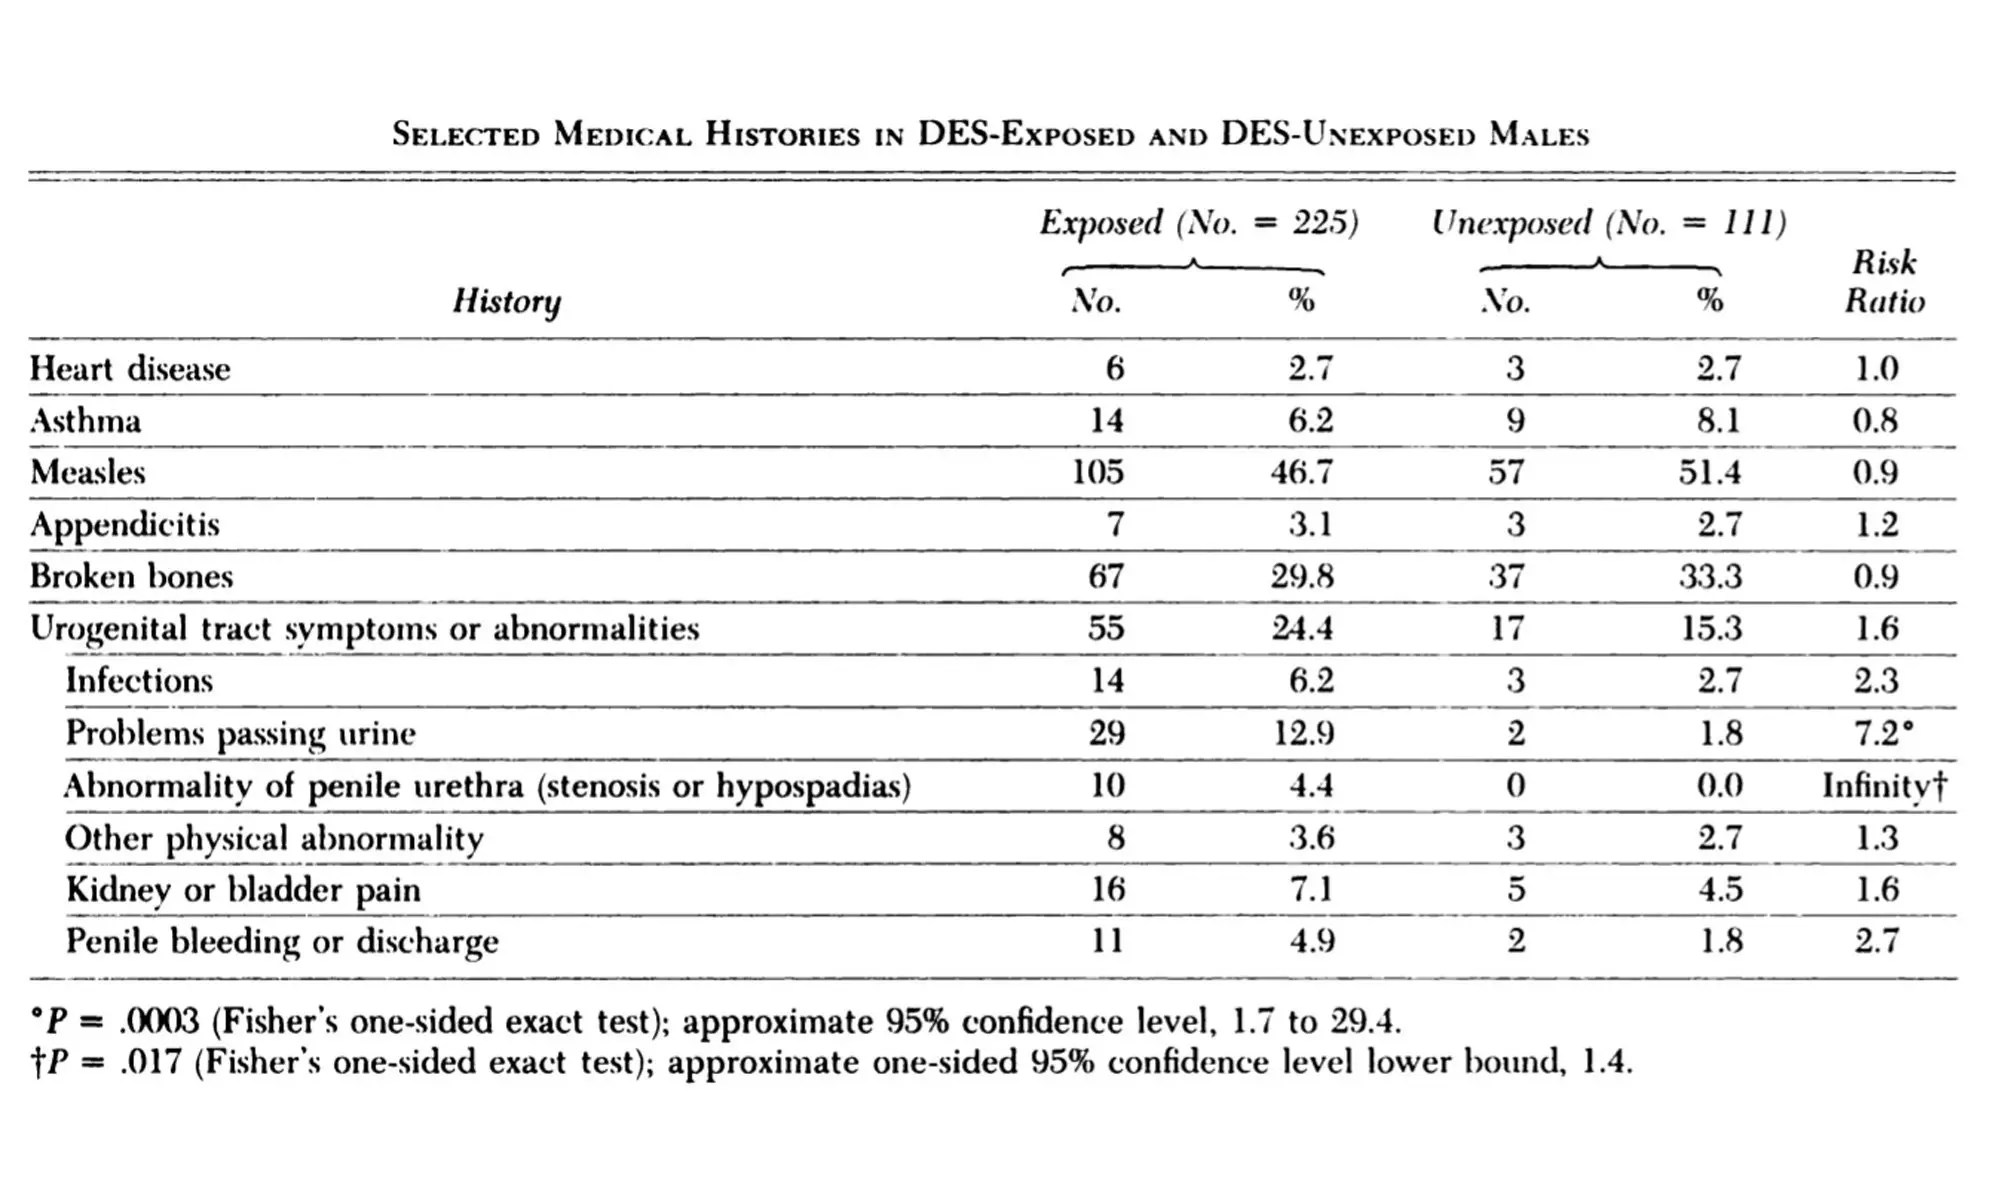 Urogenital tract abnormalities in DES sons